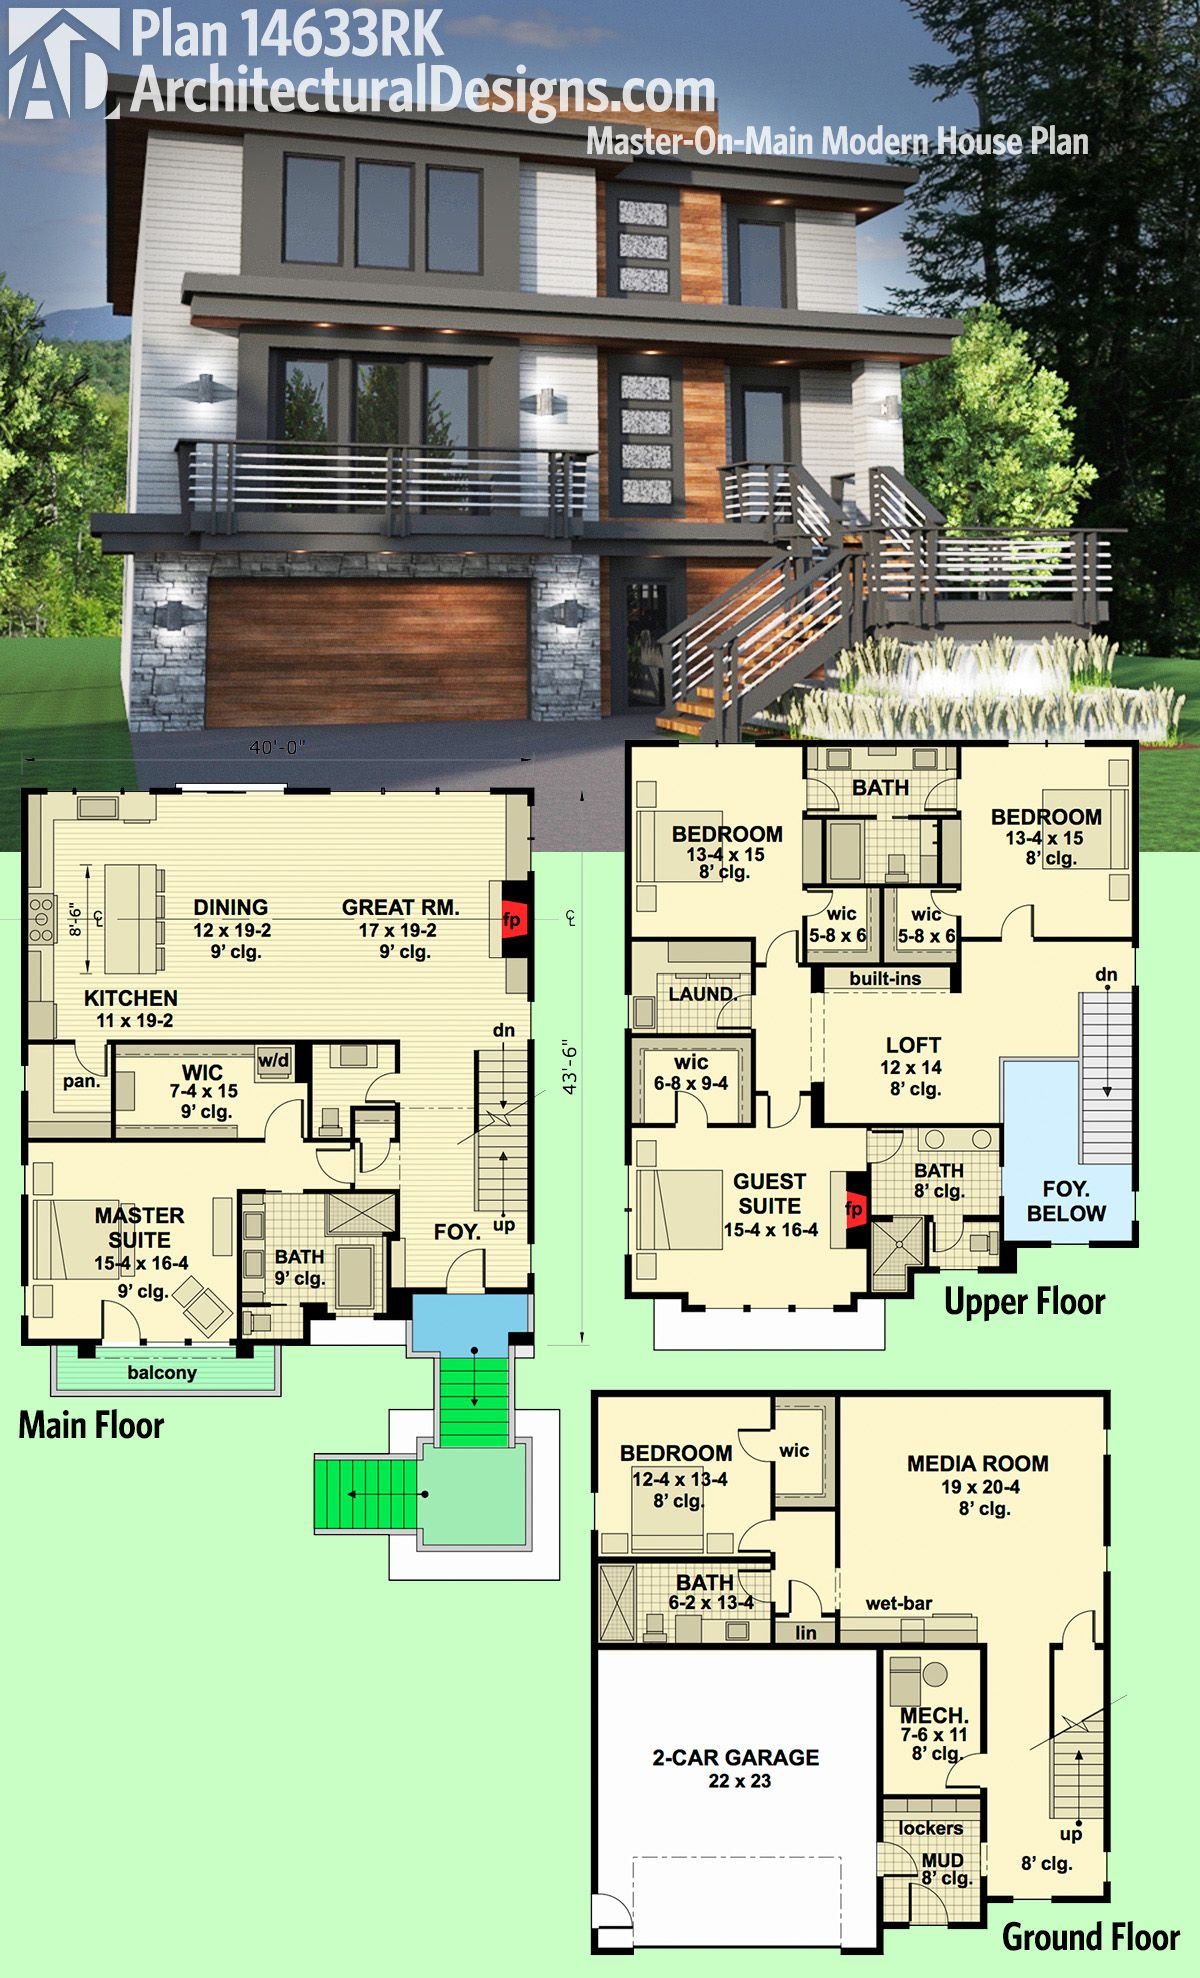 Plan 14633rk master on main modern house plan modern for Modern contemporary house plans